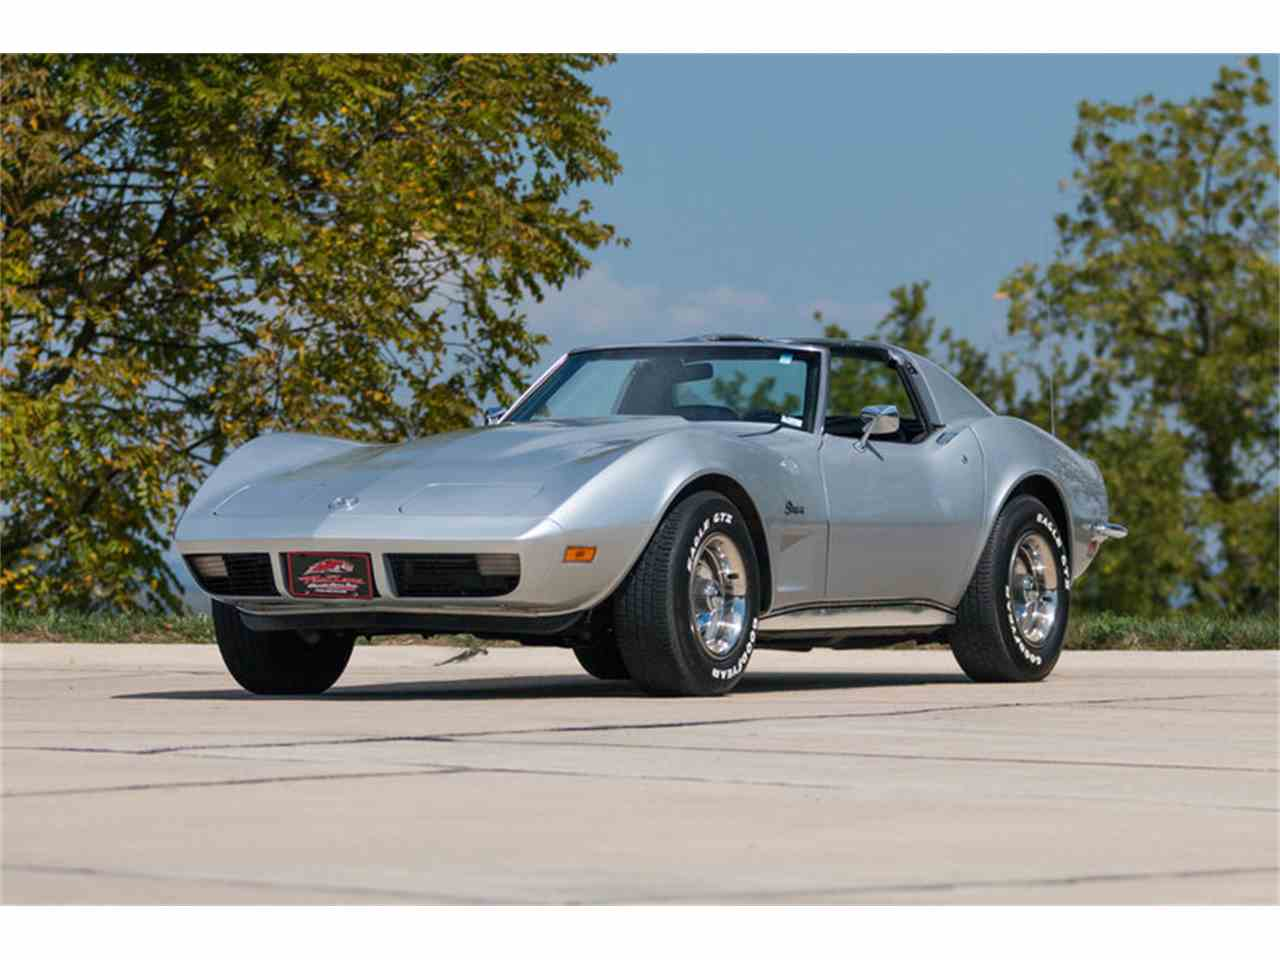 Large Picture of 1973 Chevrolet Corvette located in St. Charles Missouri - $19,995.00 - LUKQ